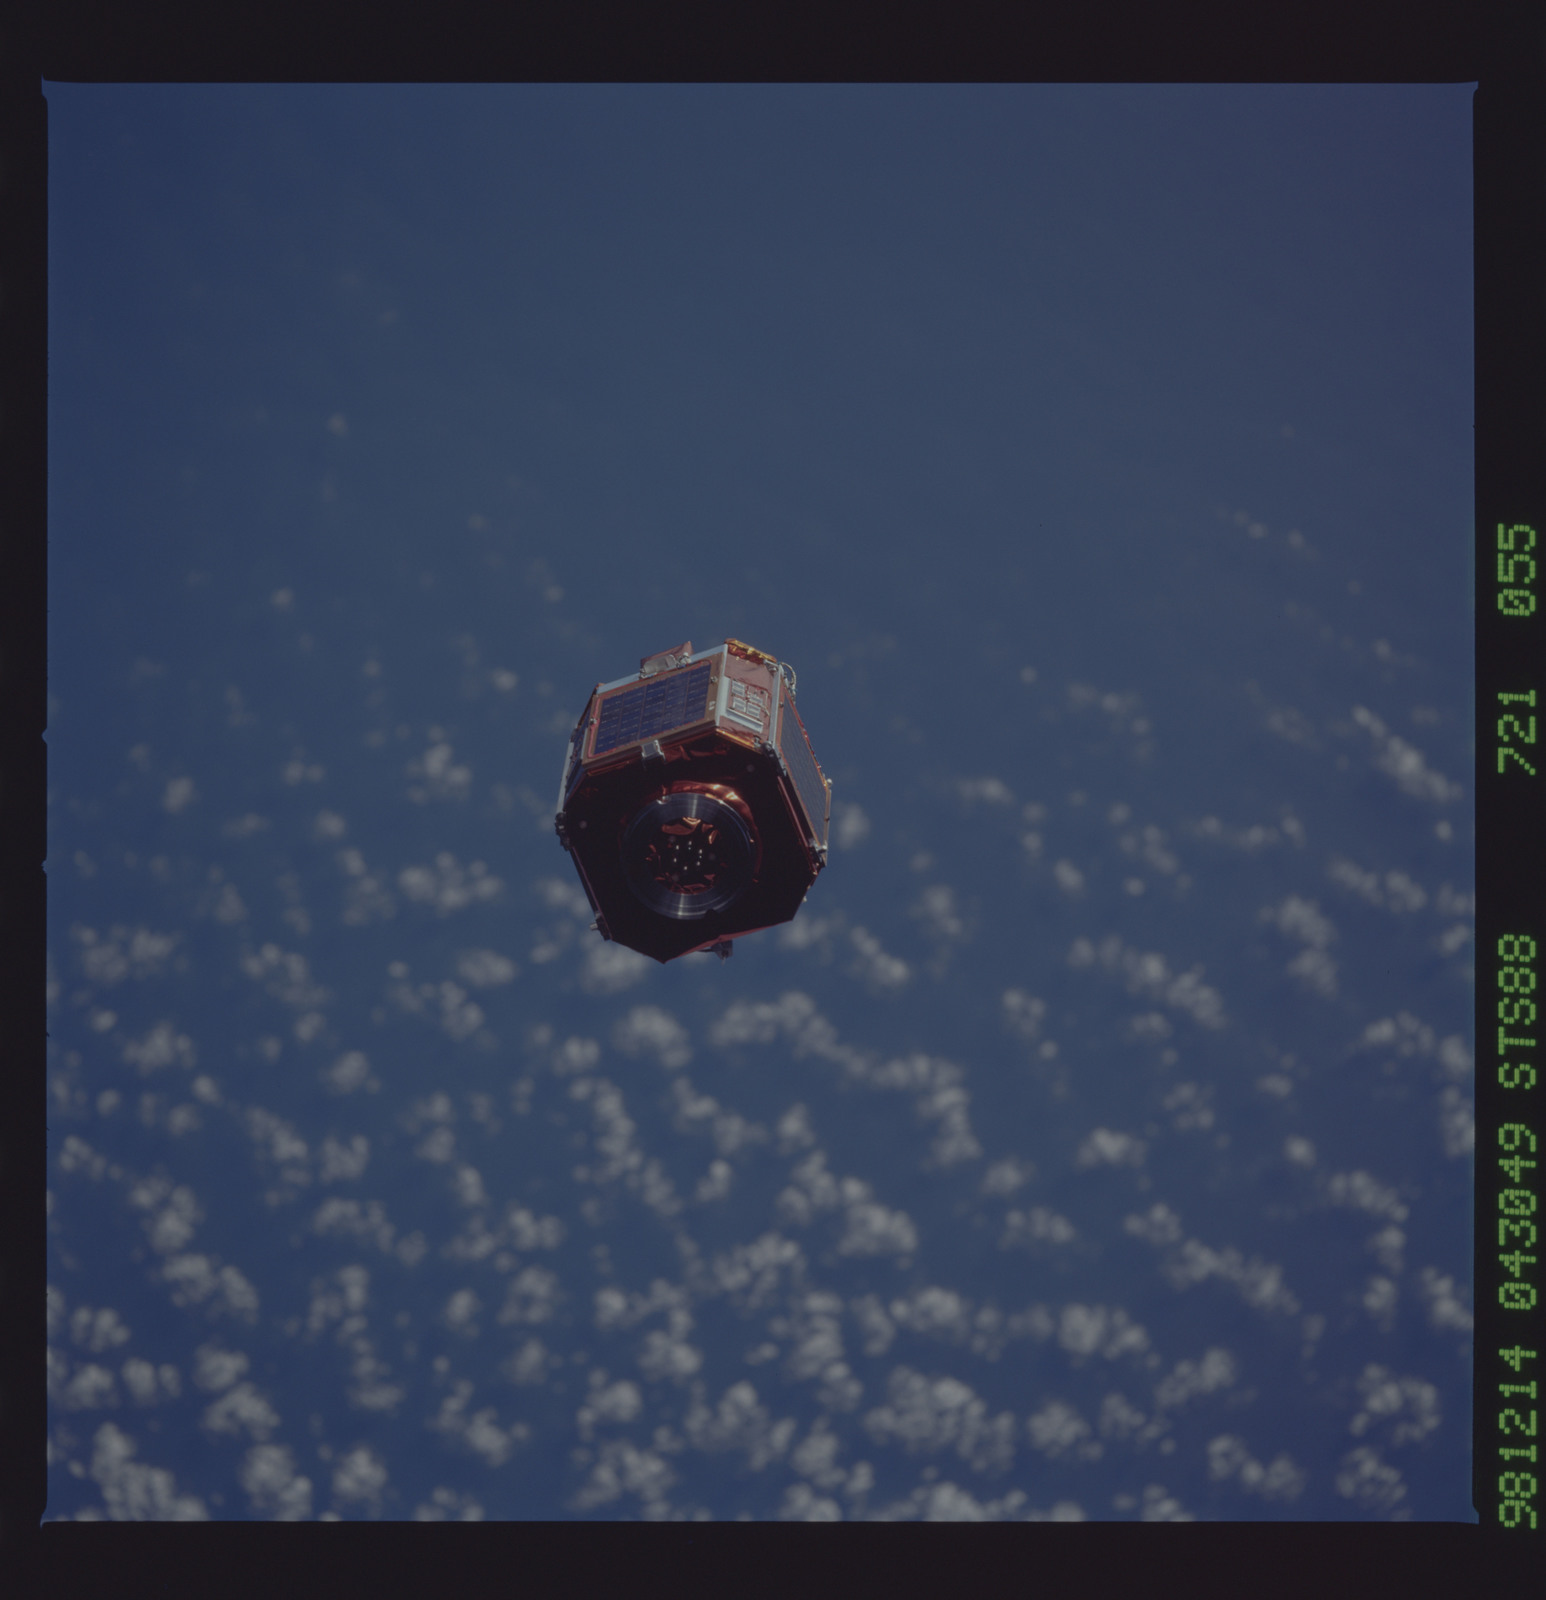 STS088-721-055 - STS-088 - SAC-A satellite in orbit over the Earth